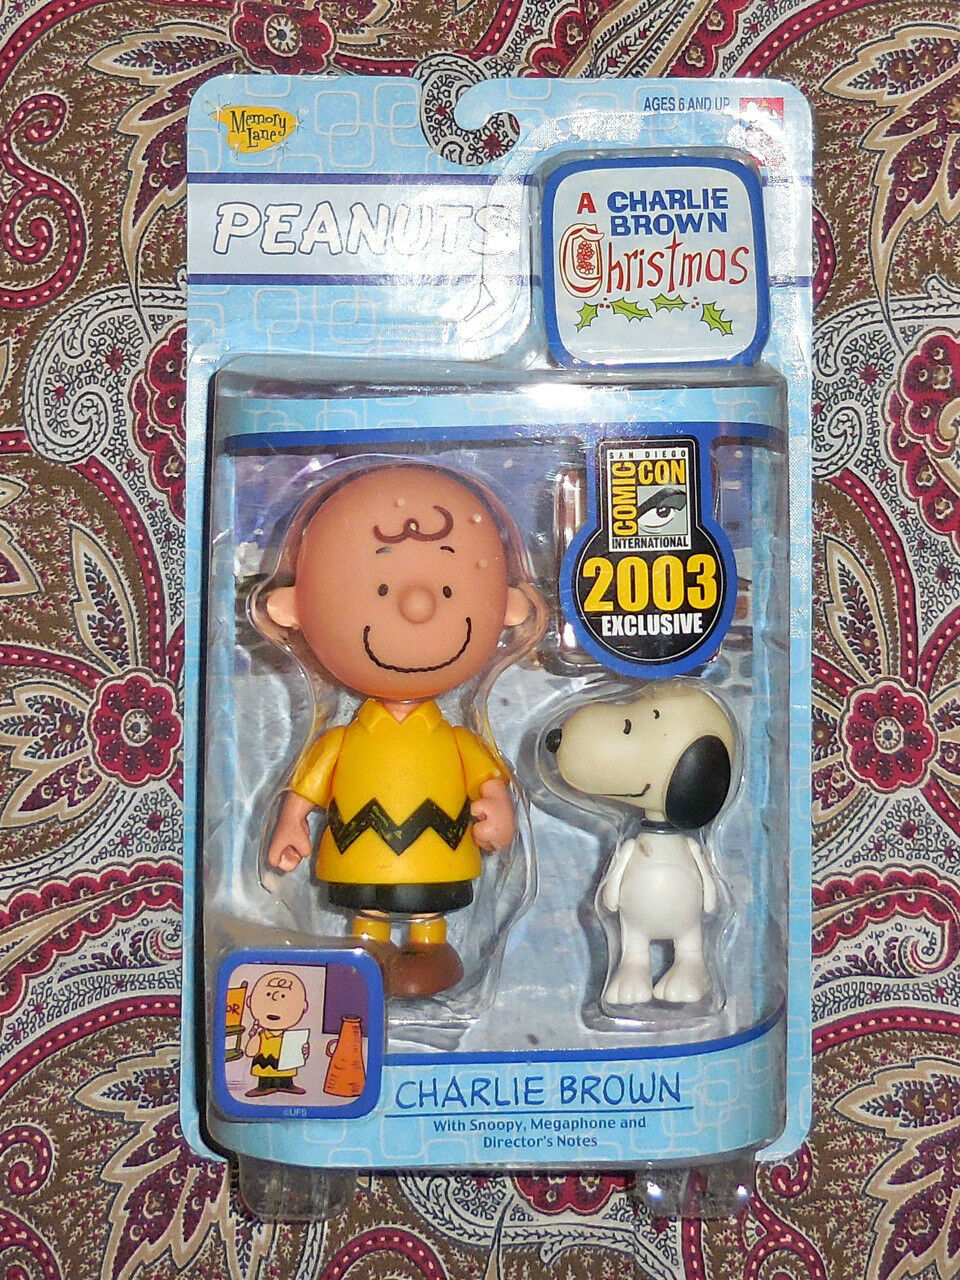 PEANUTS PEANUTS PEANUTS - CHARLIE BROWN - CHRISTMAS - SDCC 2003 EXCLUSIVE - MEMORY LANE - LOOK  6f8f13